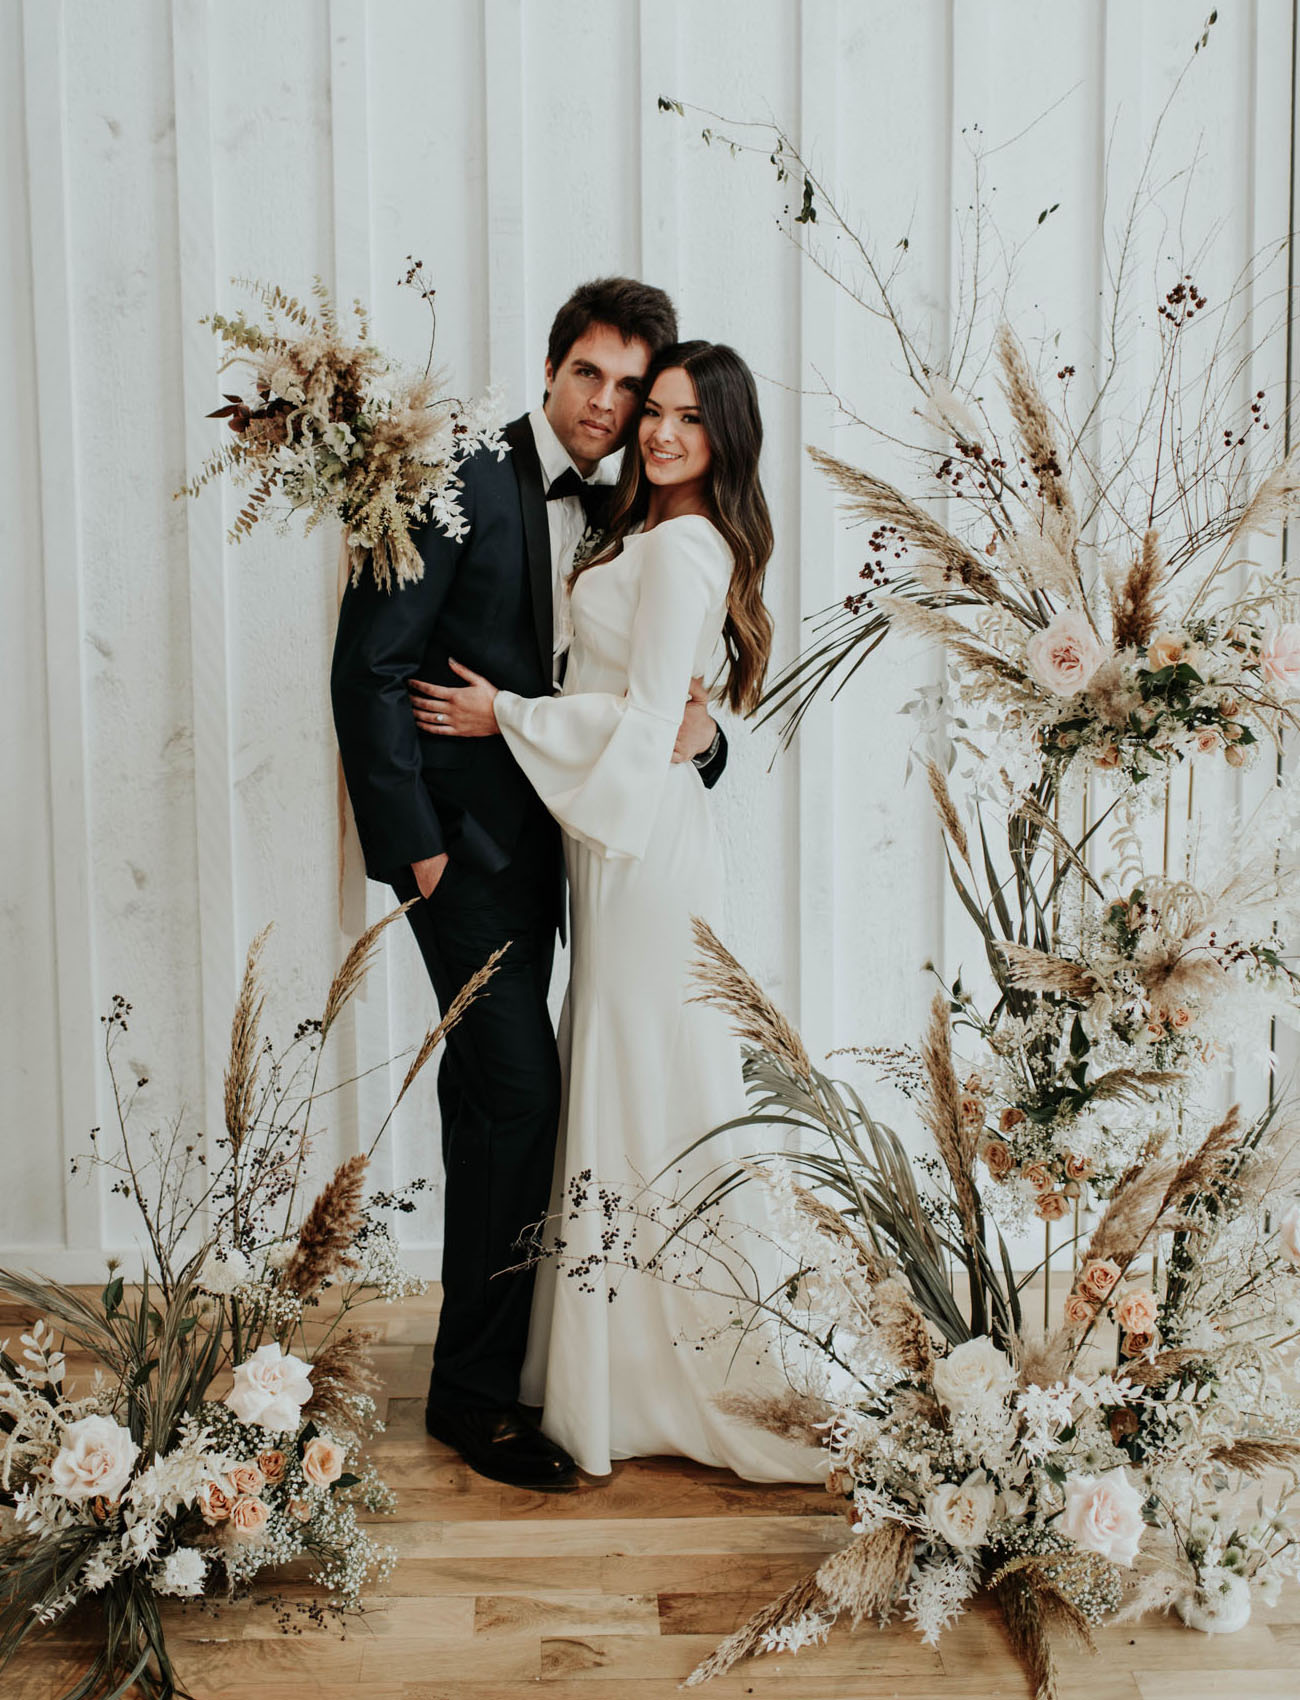 This black and white and muted tones wedding shoot was done with trendy dried flower arrangements